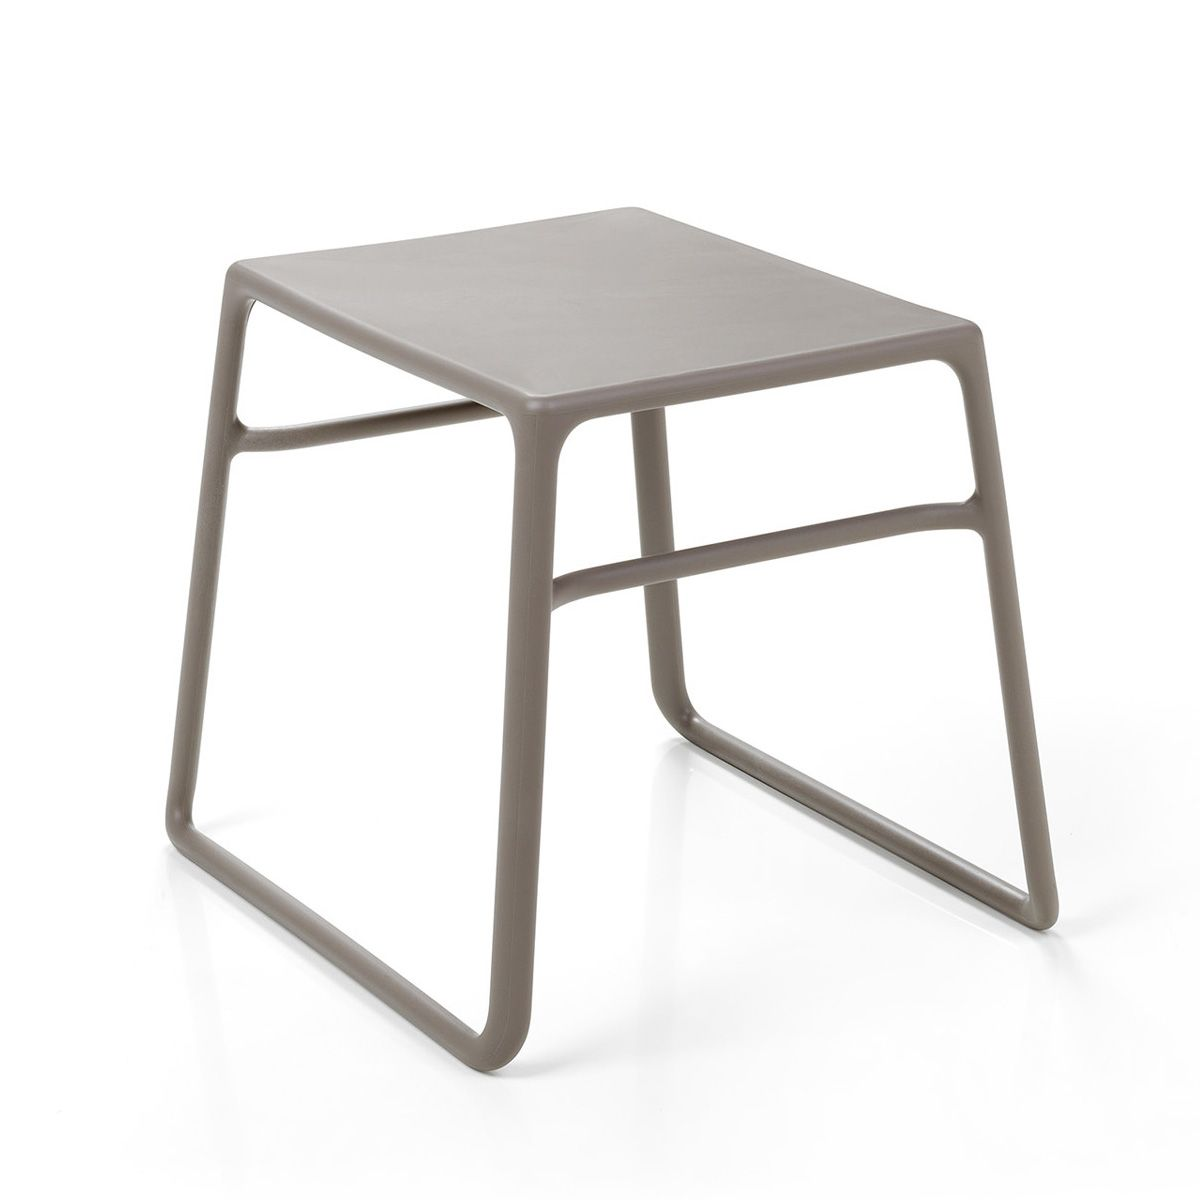 Table basse exterieur design pop nardi zendart design - Table basse design solde ...